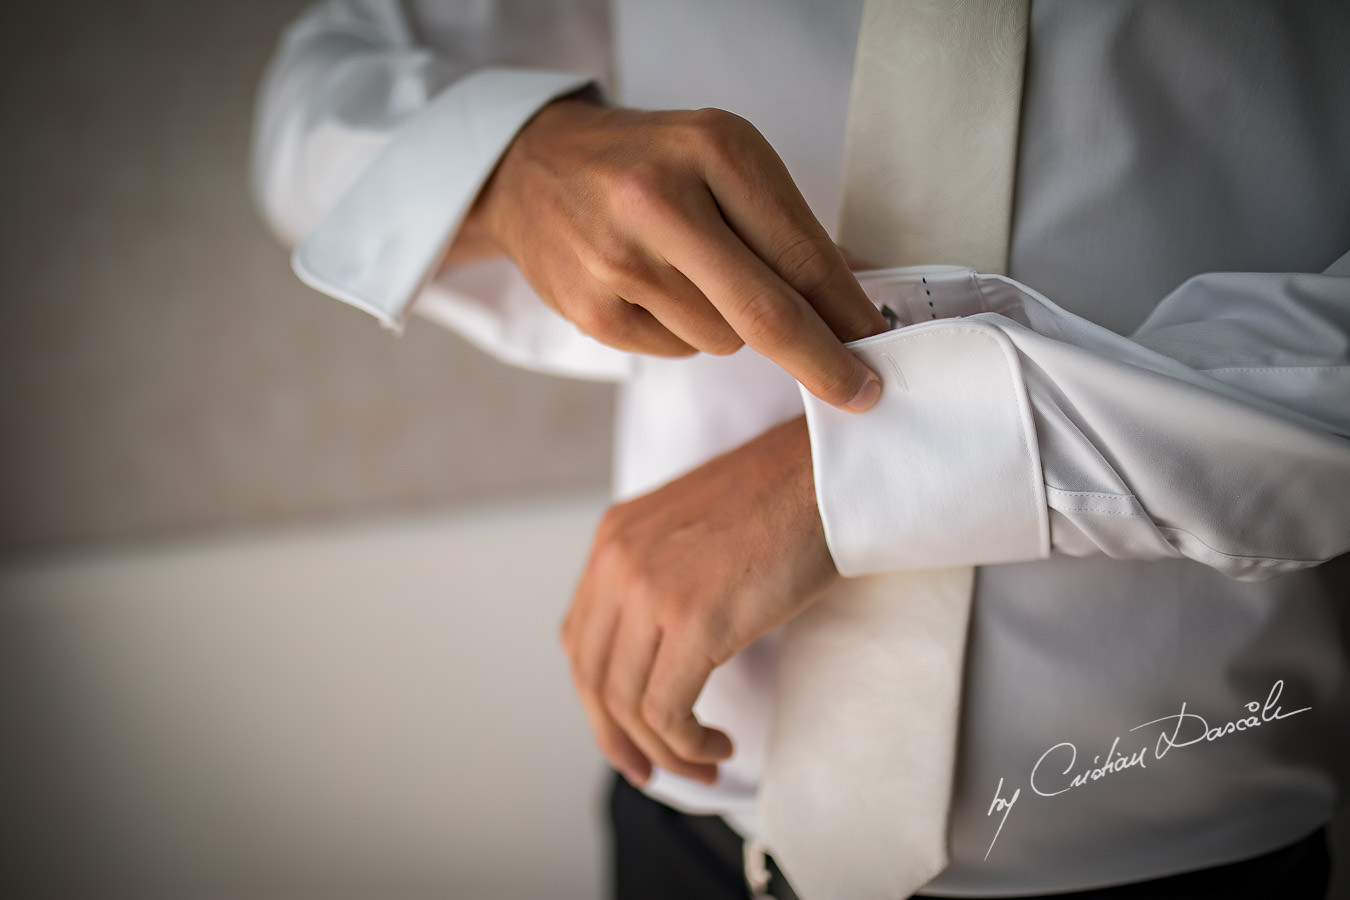 Moments when the groom is wearing his cuff links captured by Cristian Dascalu during an elegant Aphrodite Hills Wedding in Cyprus.